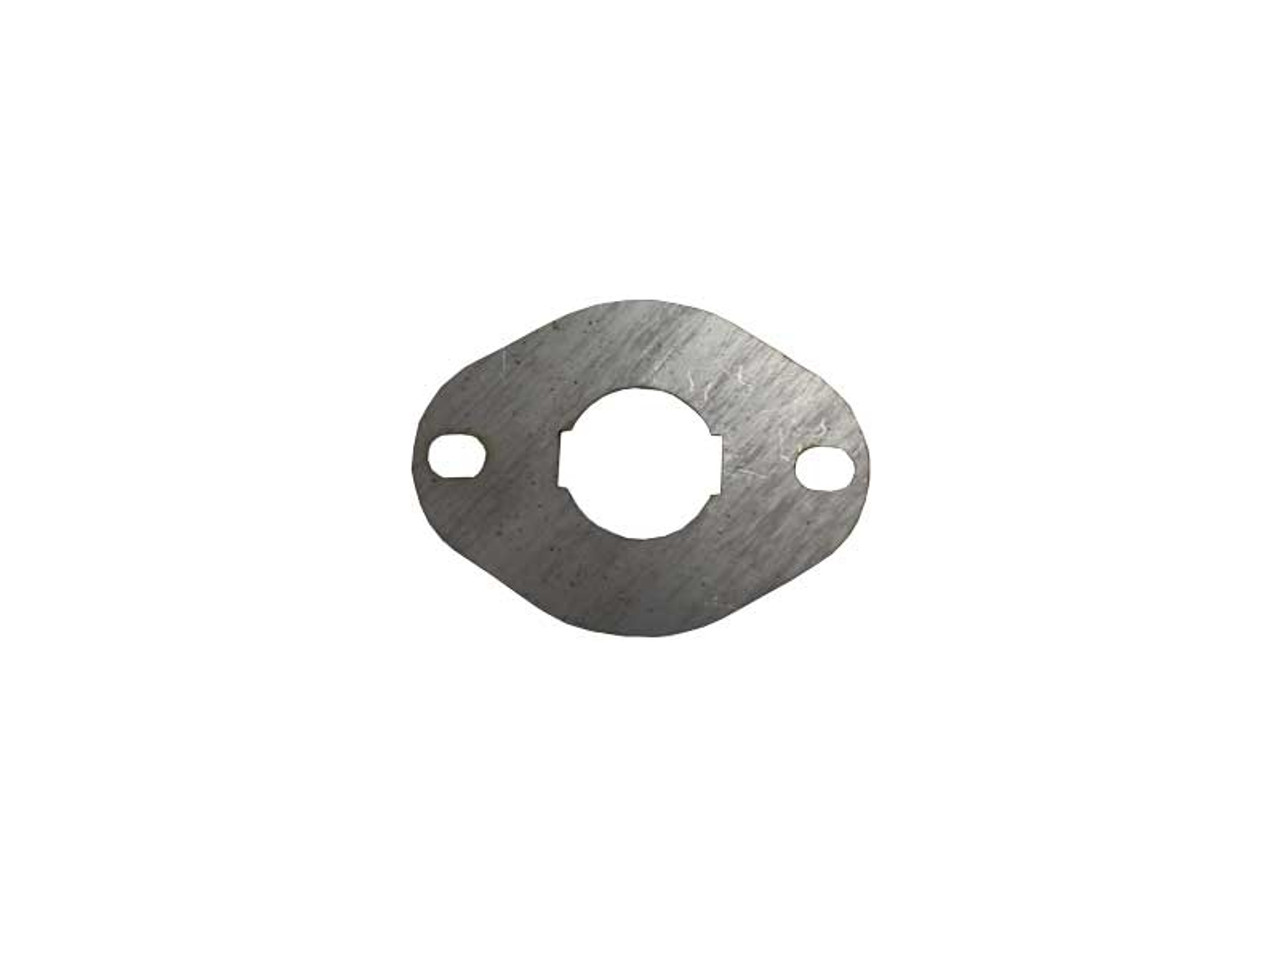 Breckwell Low Limit Switch Adapter Plate (16-1025)